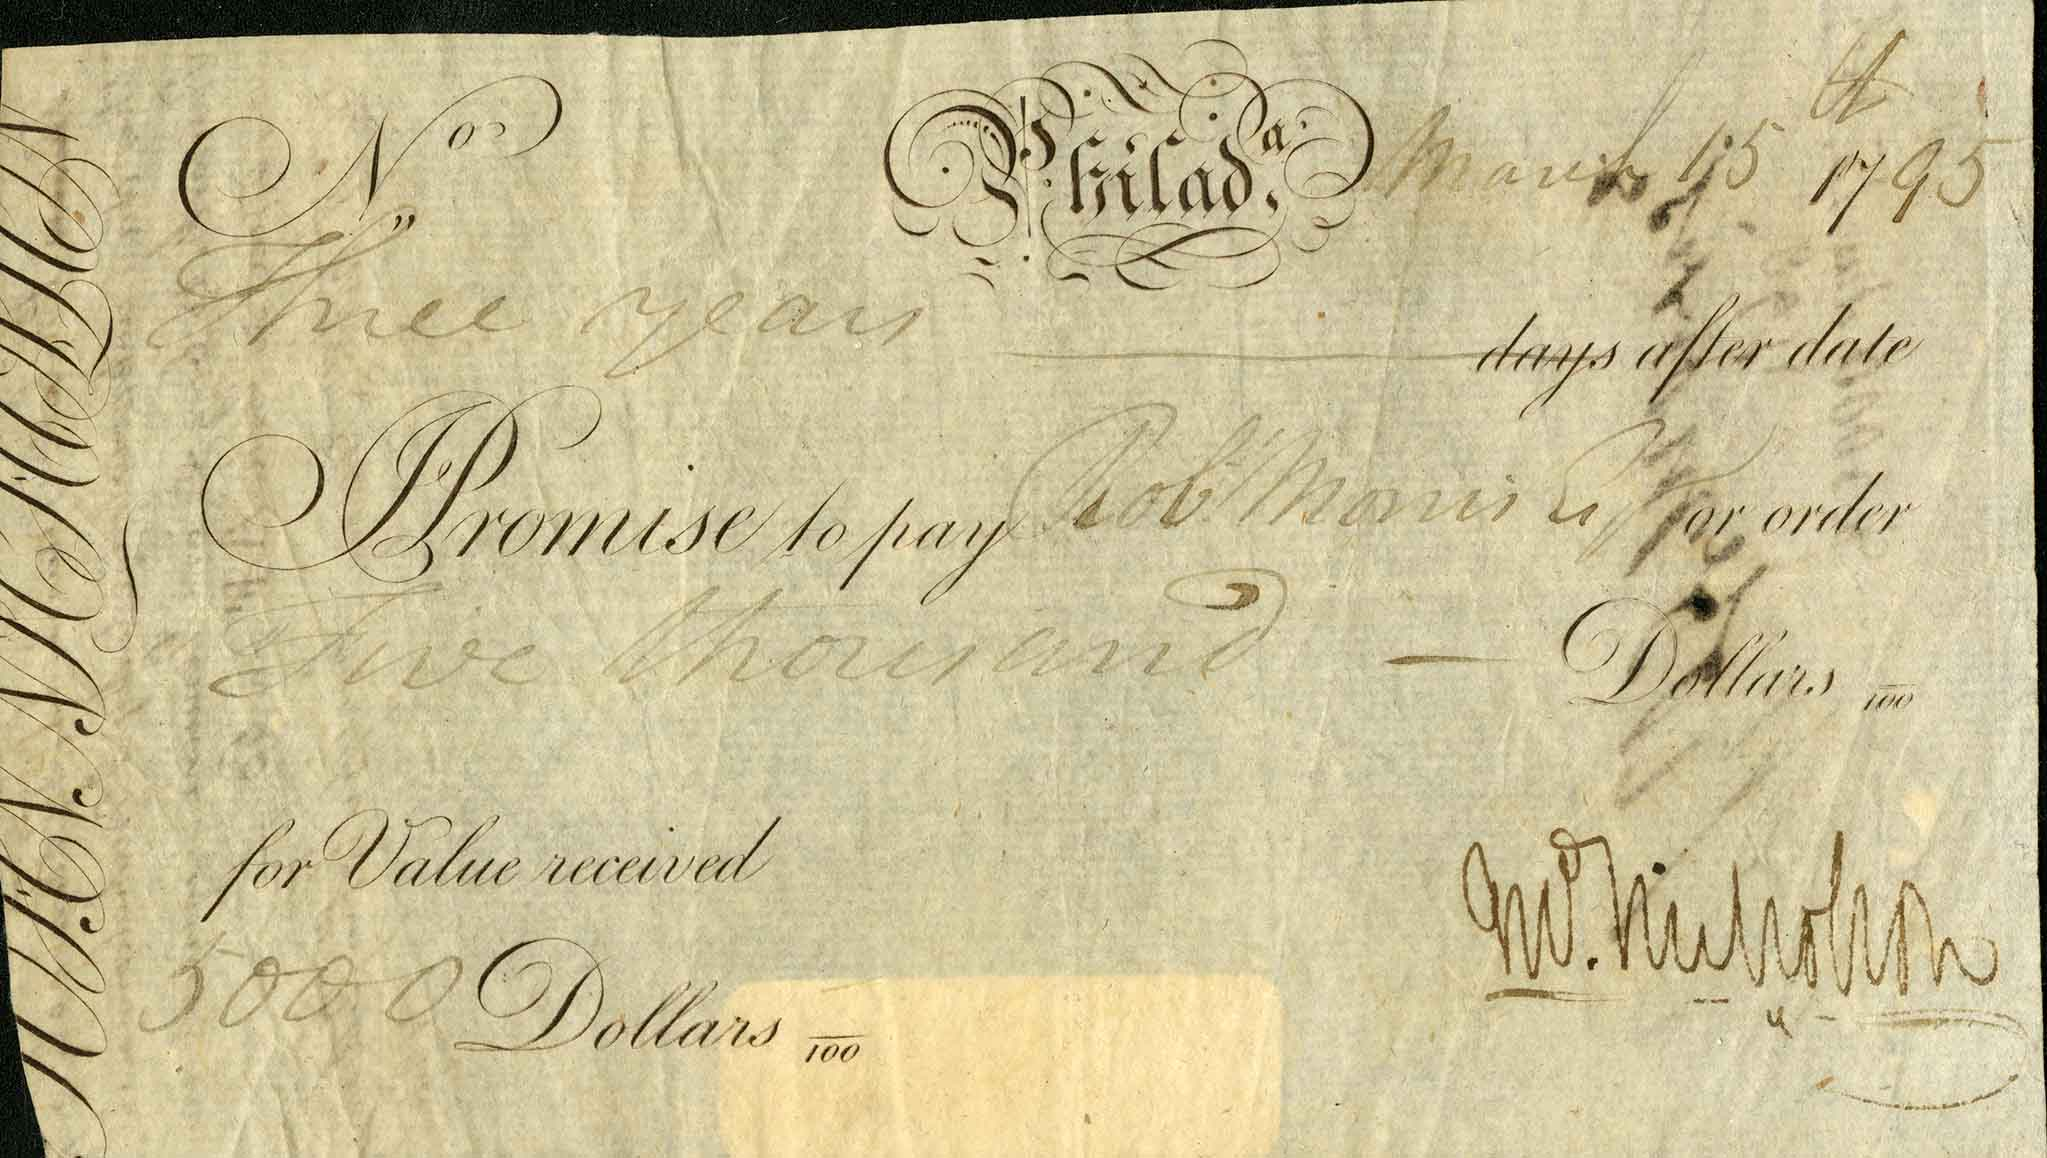 Promissory note from 1795. From the Gaines Collection of Americana